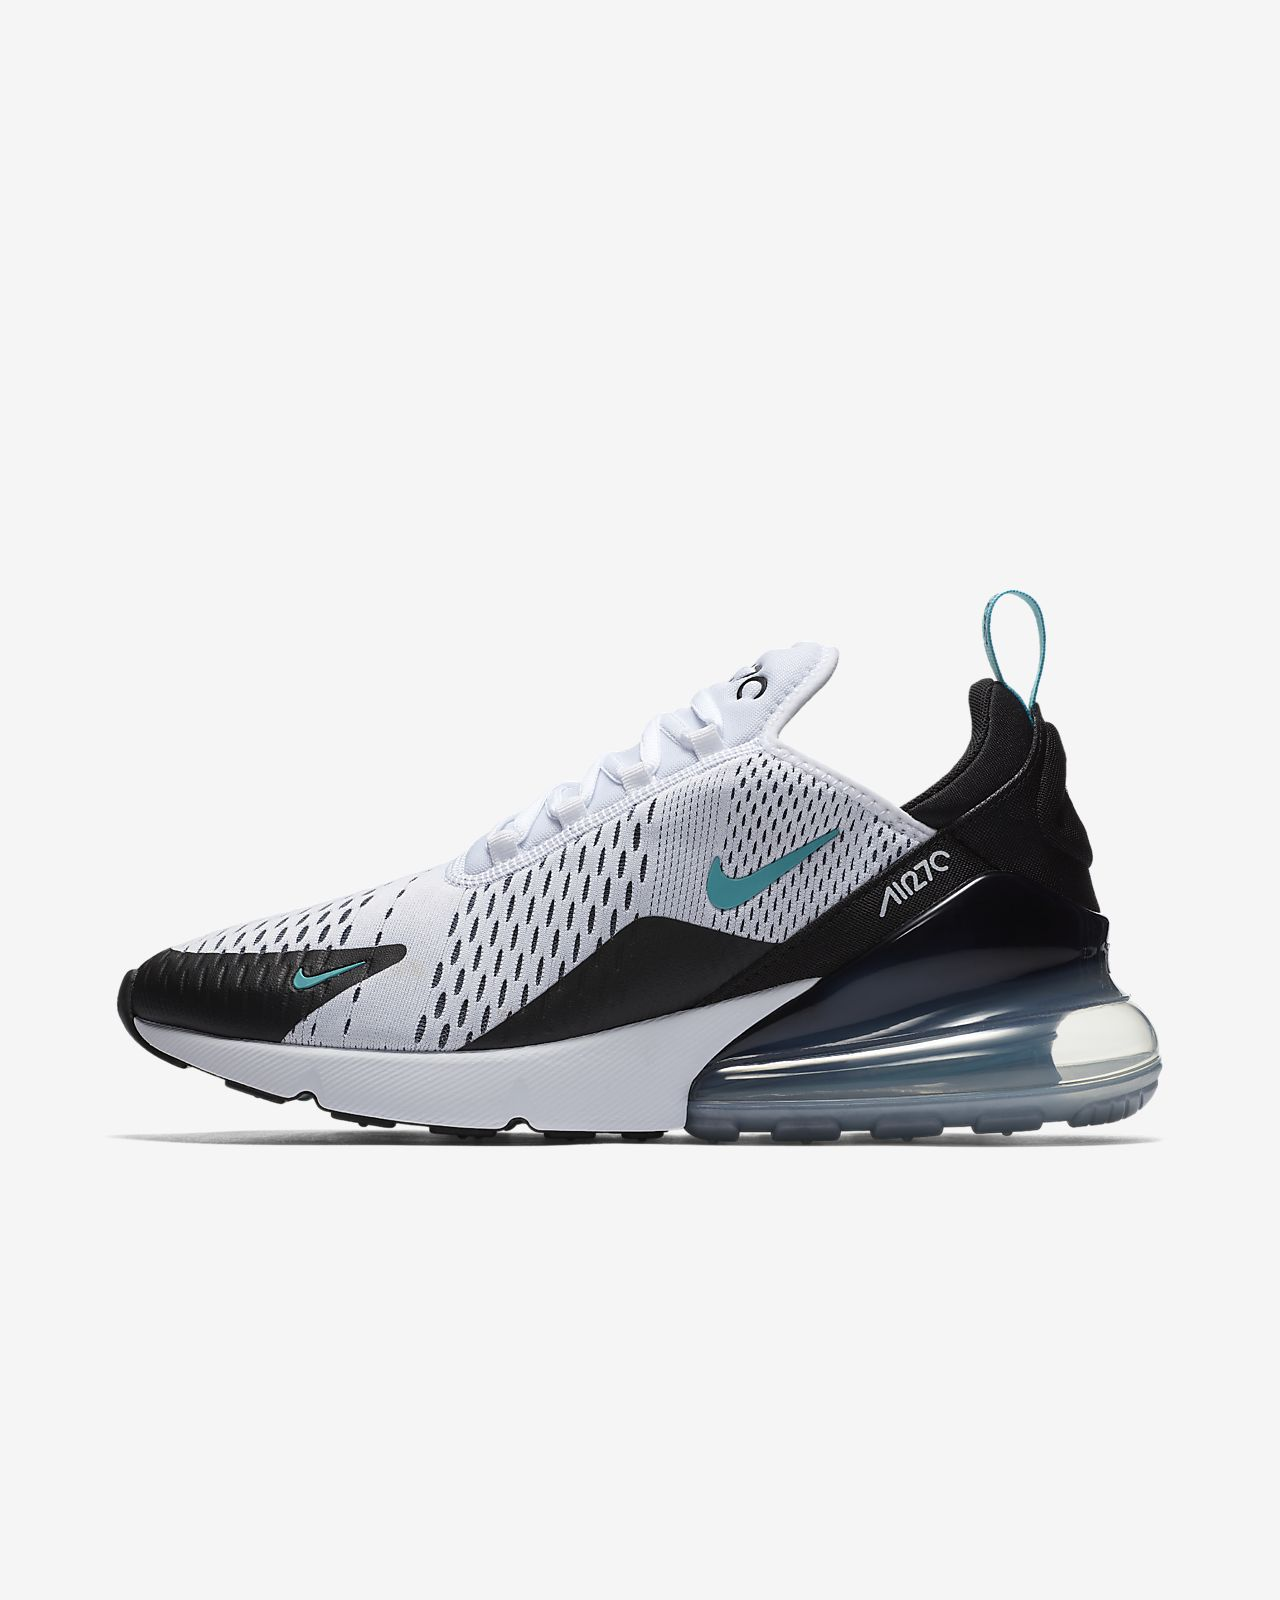 good selling pretty cheap get cheap Chaussure Nike Air Max 270 pour Homme